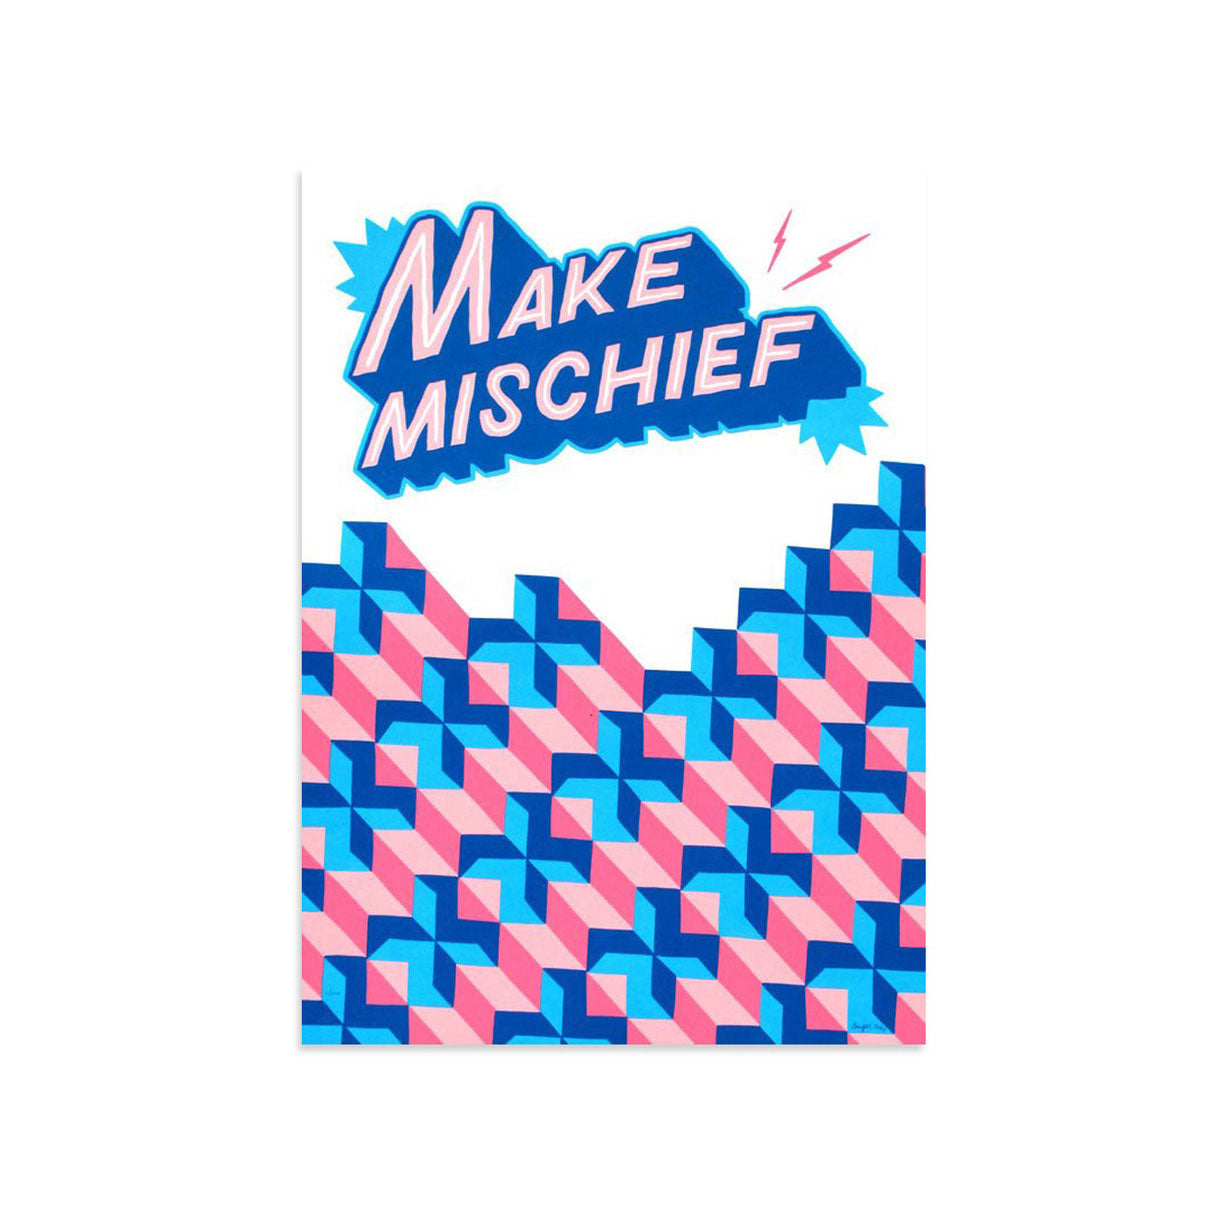 Make Mischief by Ornamental Conifer-Print-Poster Child Prints